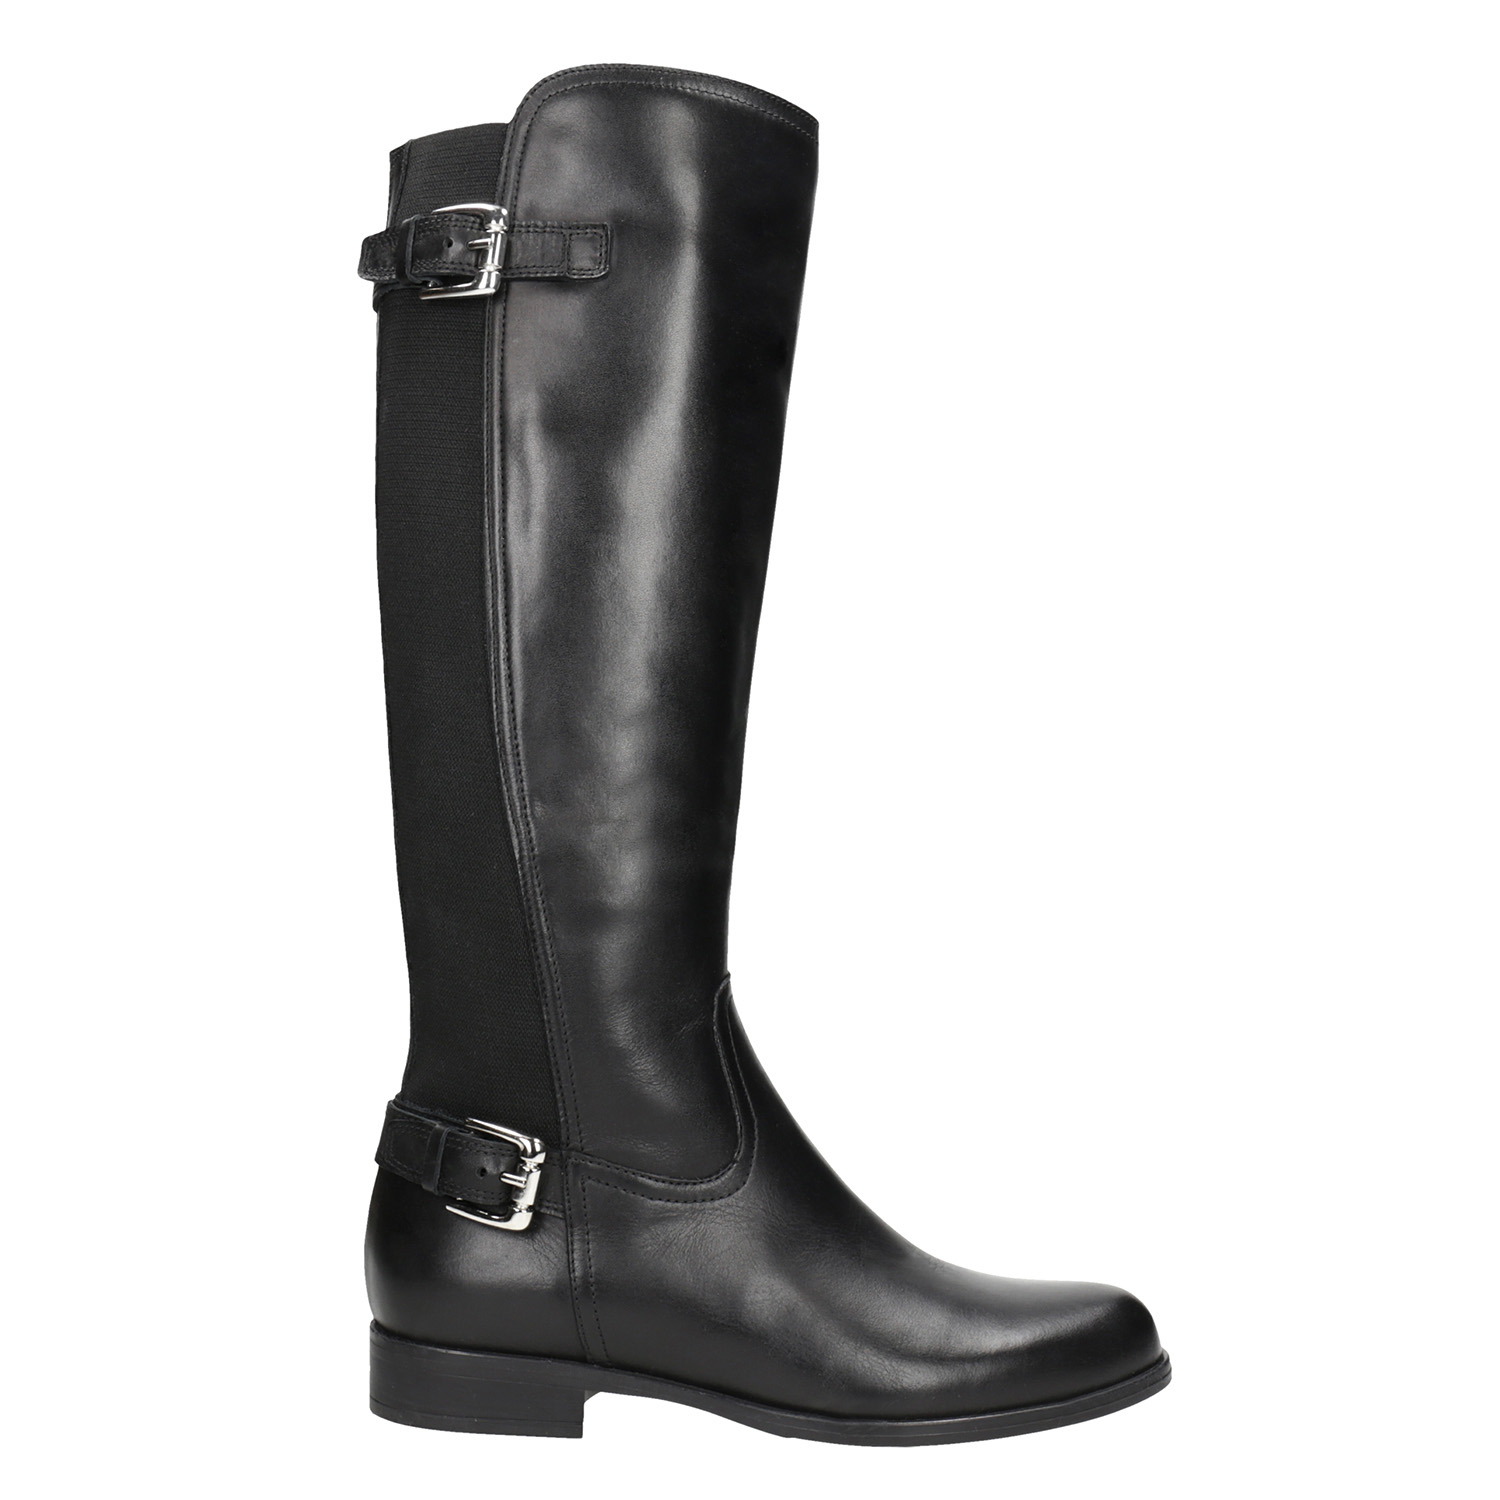 ed4af0508644 Bata Ladies  leather high boots with buckles - No Heel